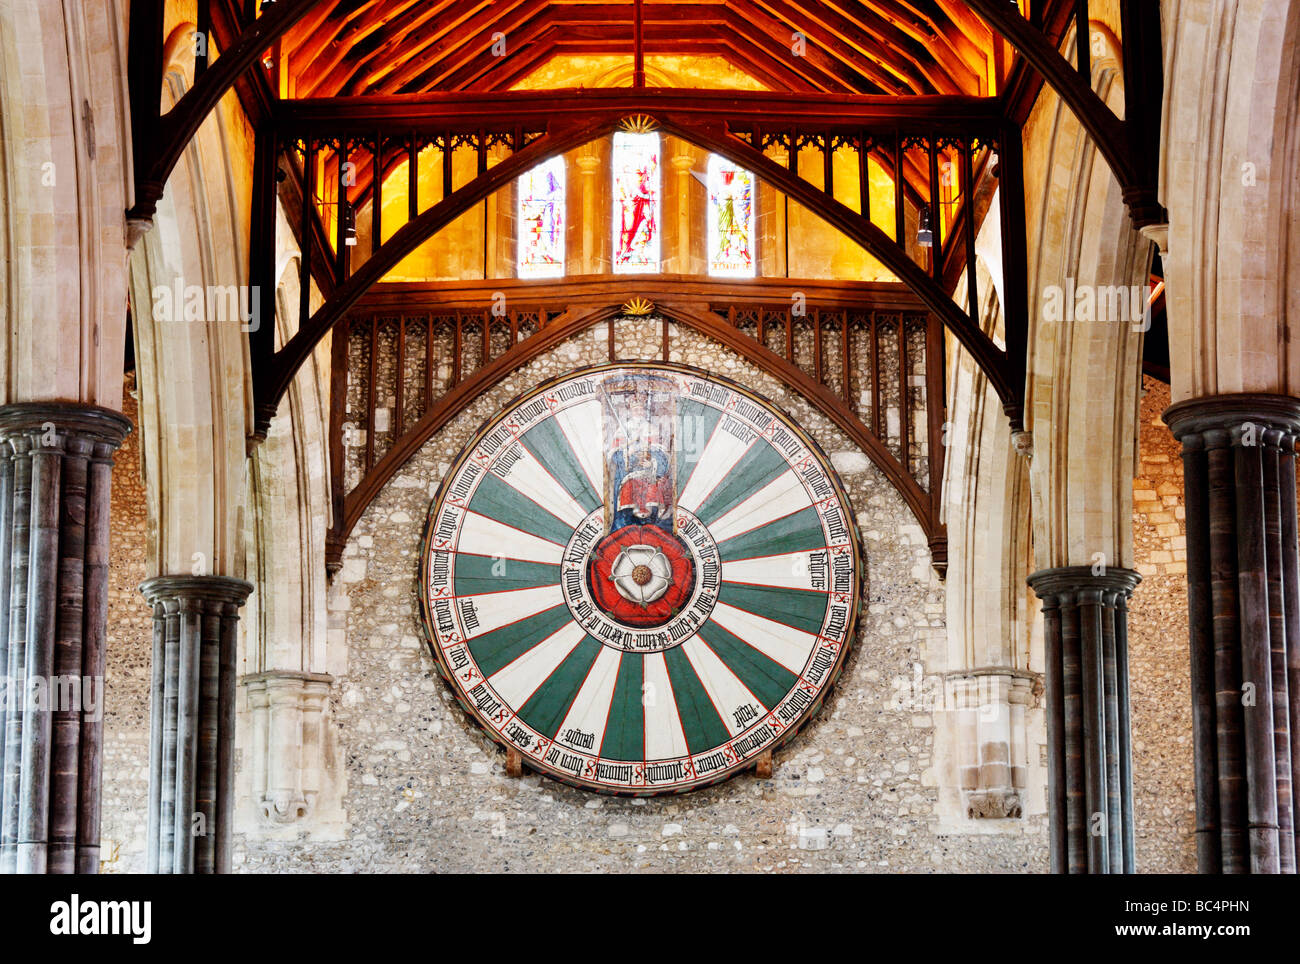 King Arthur's round table in The Great Hall, Winchester castle, Winchester, Hampshire, England, United Kingdom Stock Photo